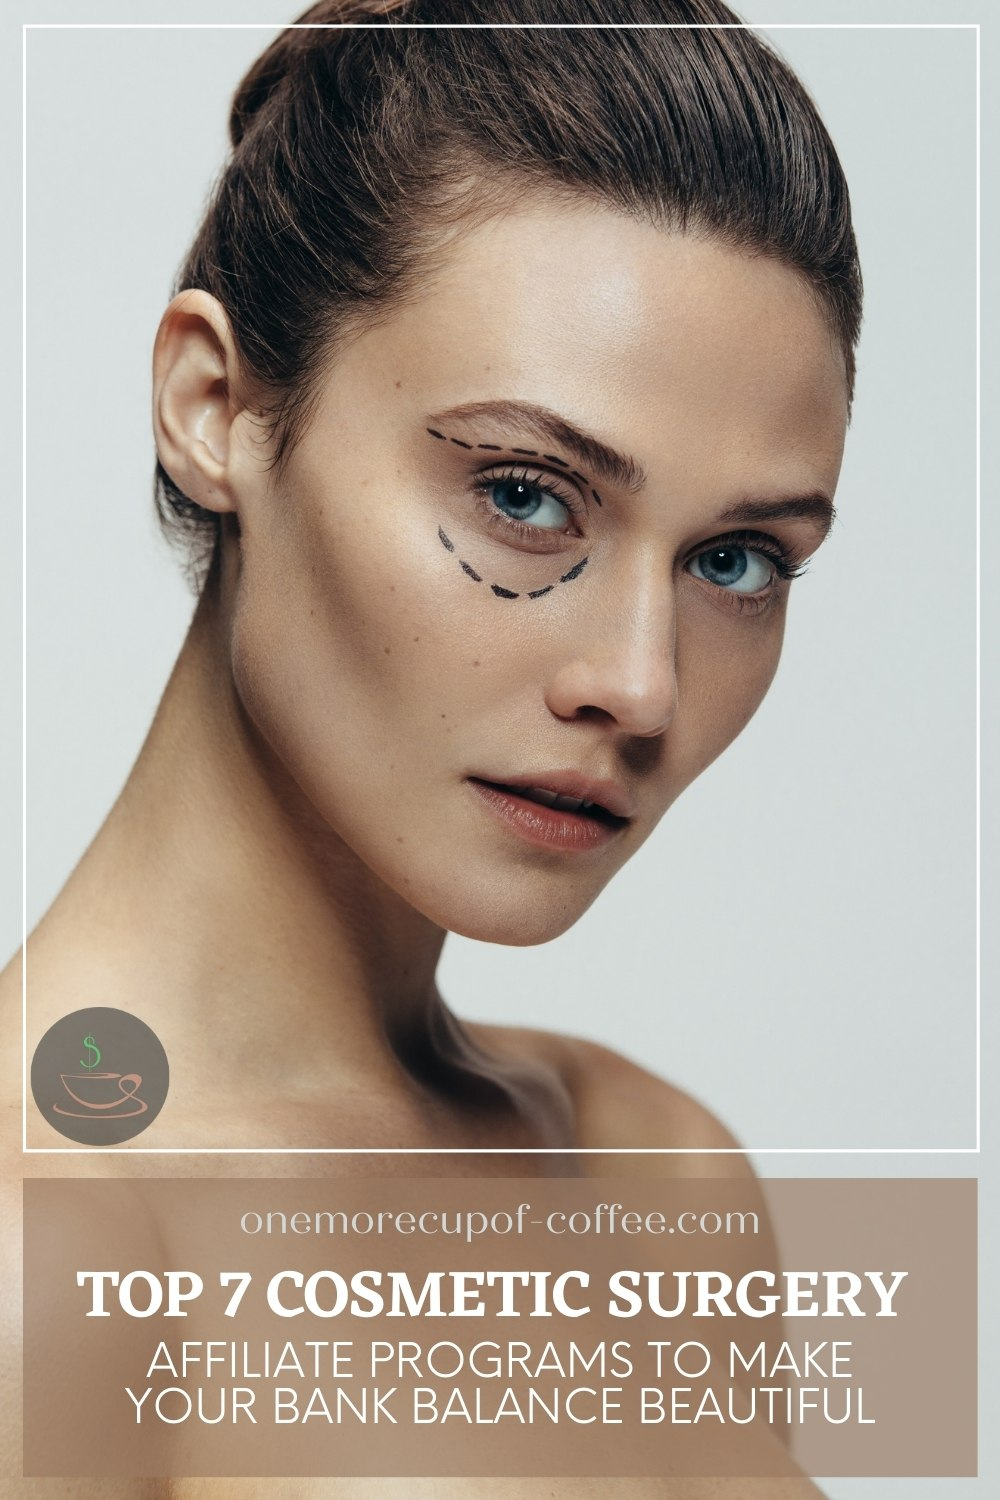 """closeup image of a woman with surgical markings around her eye, with text overlay """"Top 7 Cosmetic Surgery Affiliate Programs To Make Your Bank Balance Beautiful"""""""